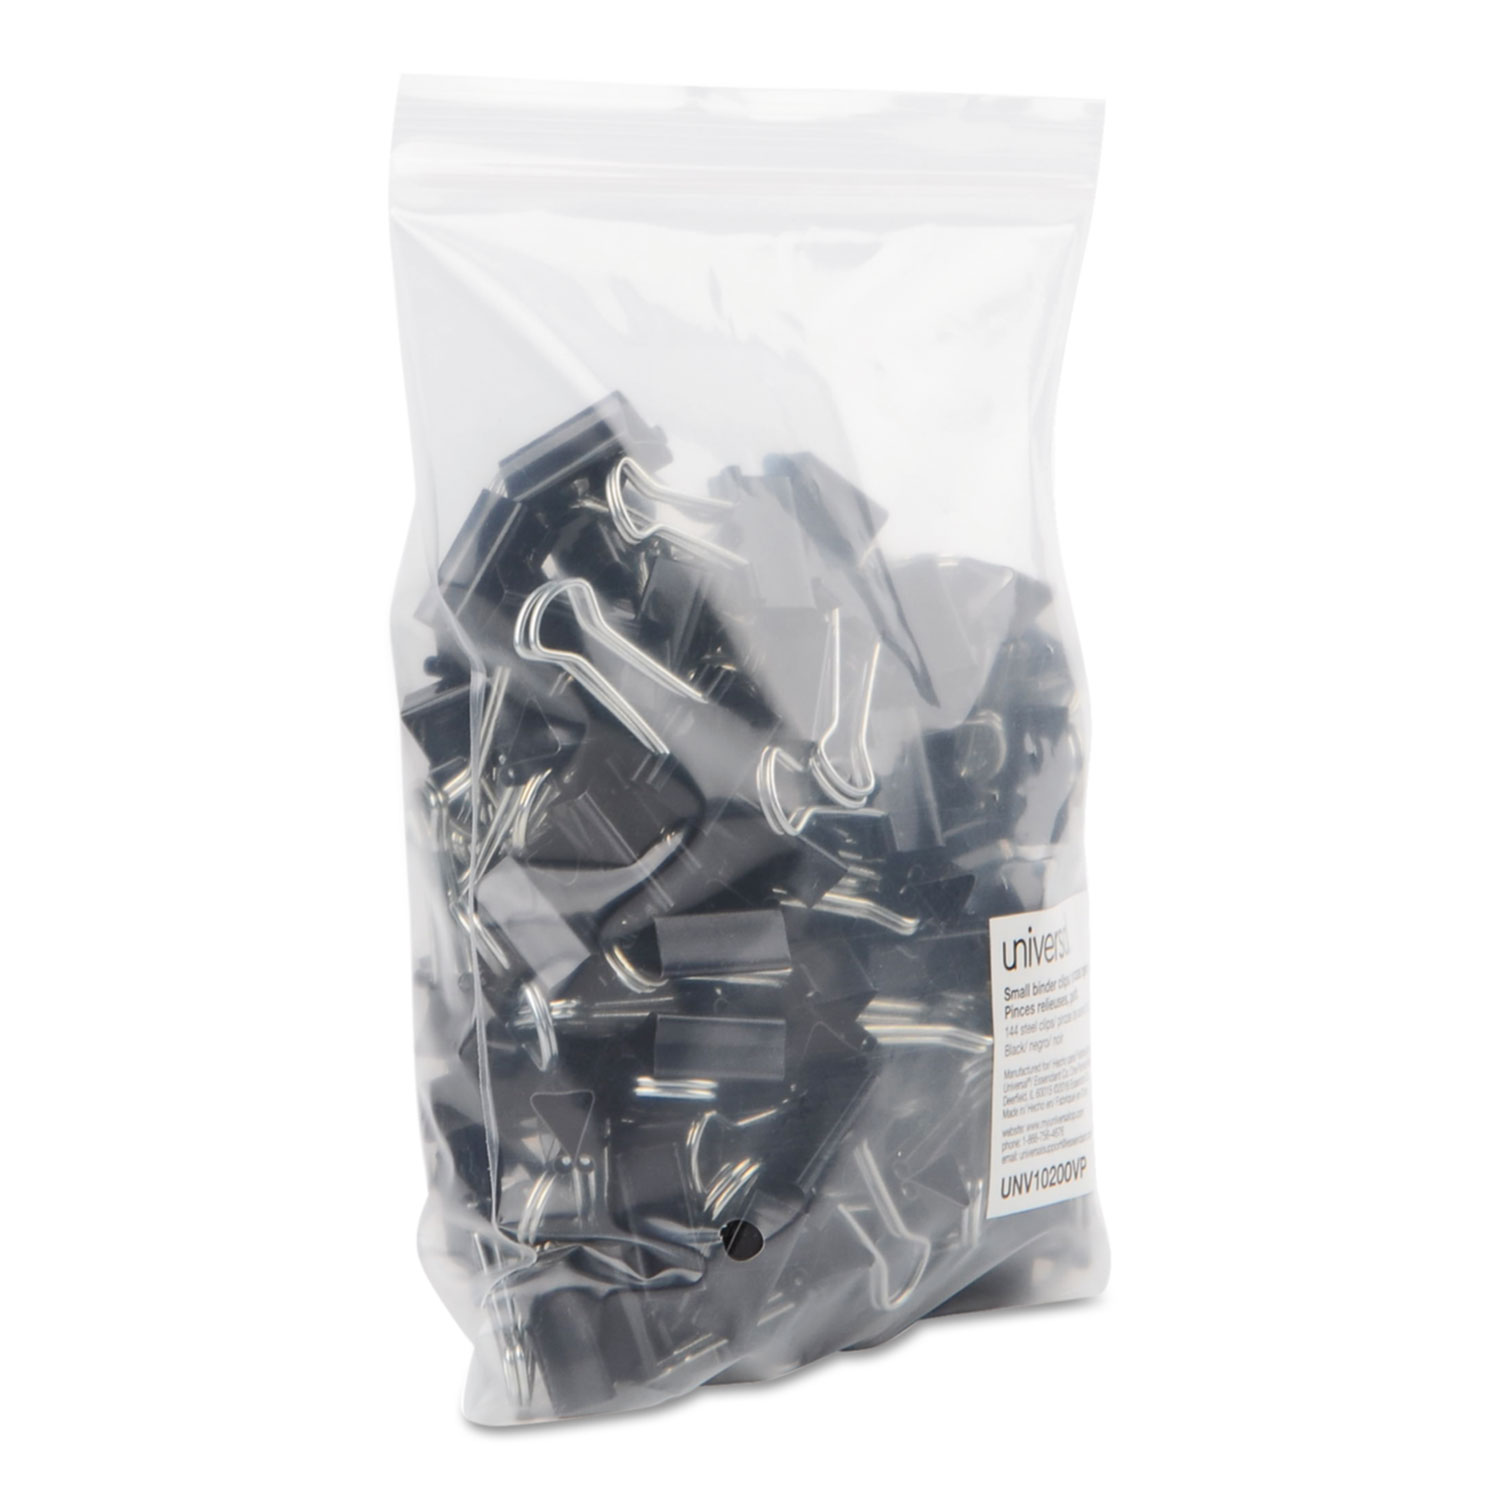 Clip Seal Bags Binder Clips In Zip Seal Bag Small Black Silver 144